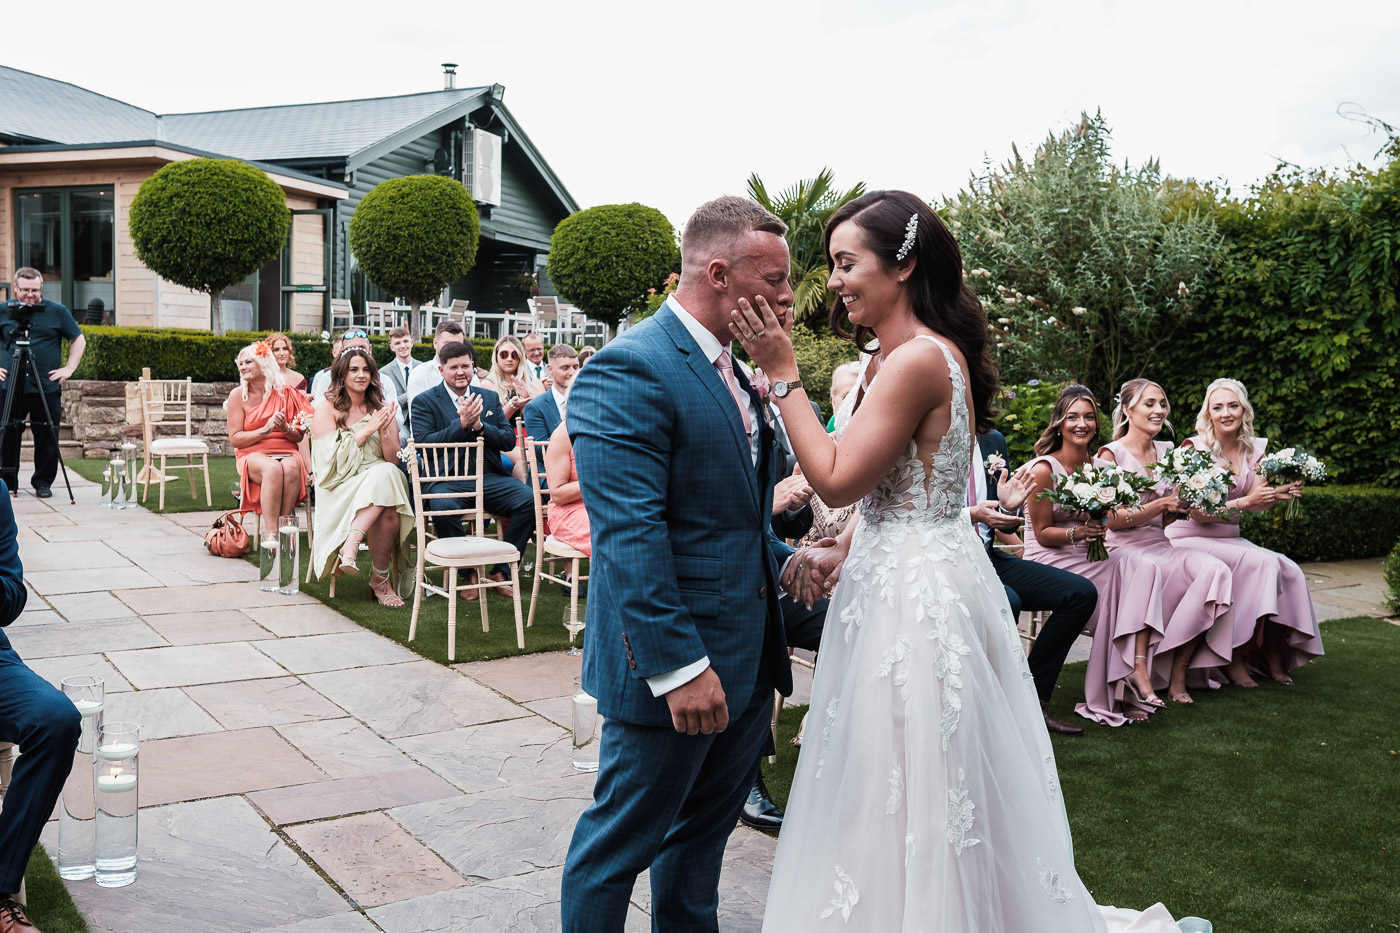 The Bride embraces the groom at the outdoor wedding ceremony of their Pryors Hayes Golf Club Wedding